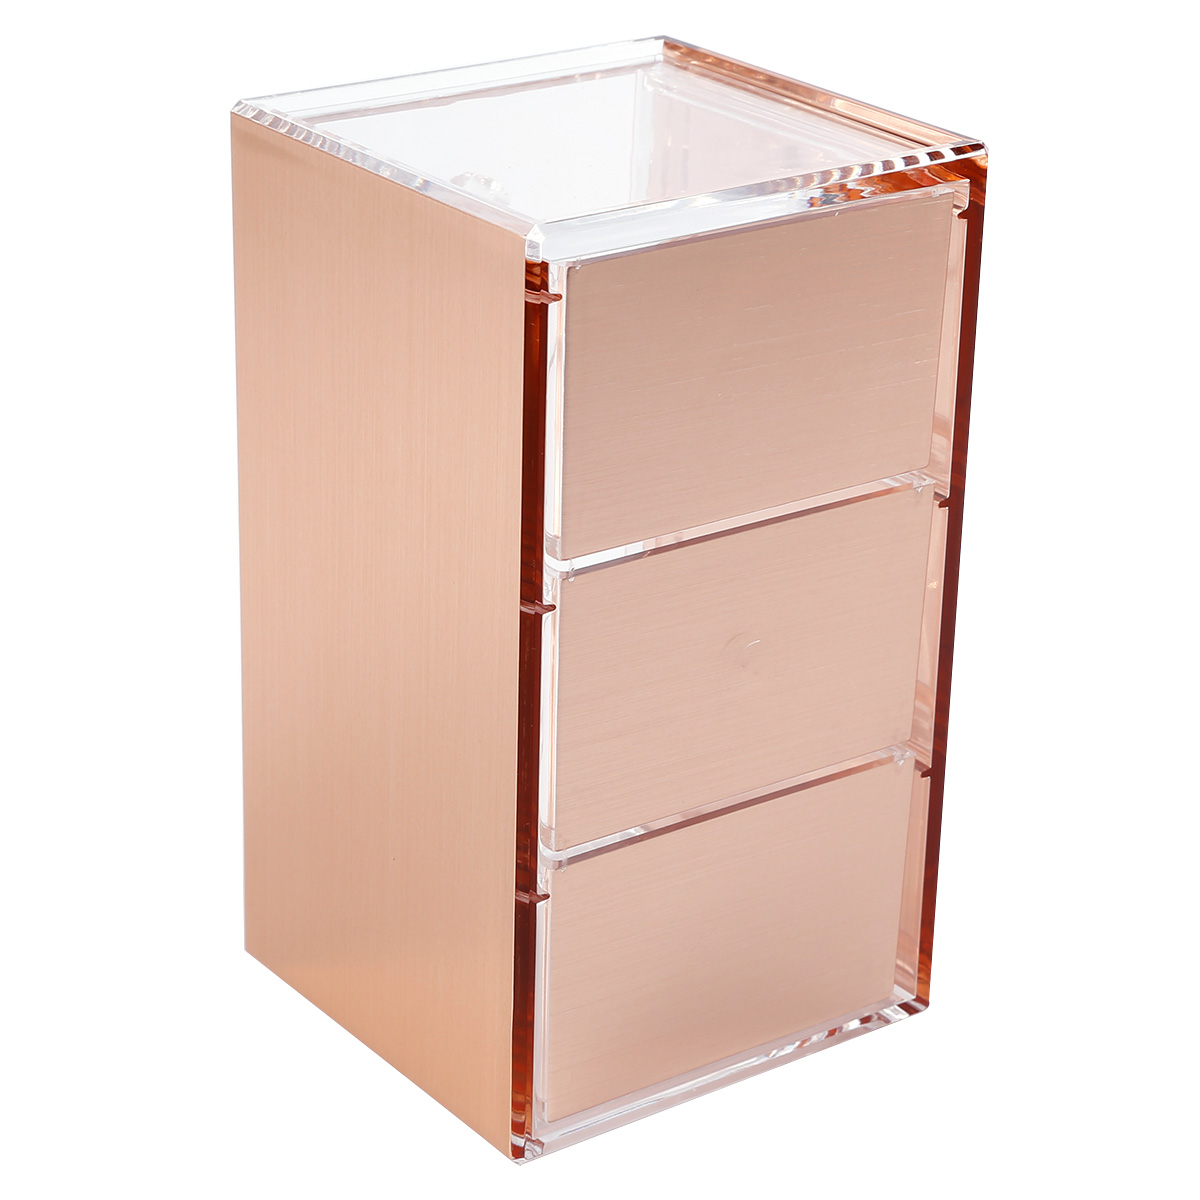 3 ebenen rosegold acryl kosmetik organizer aufbewahrung kosmetikbox schubladen ebay. Black Bedroom Furniture Sets. Home Design Ideas